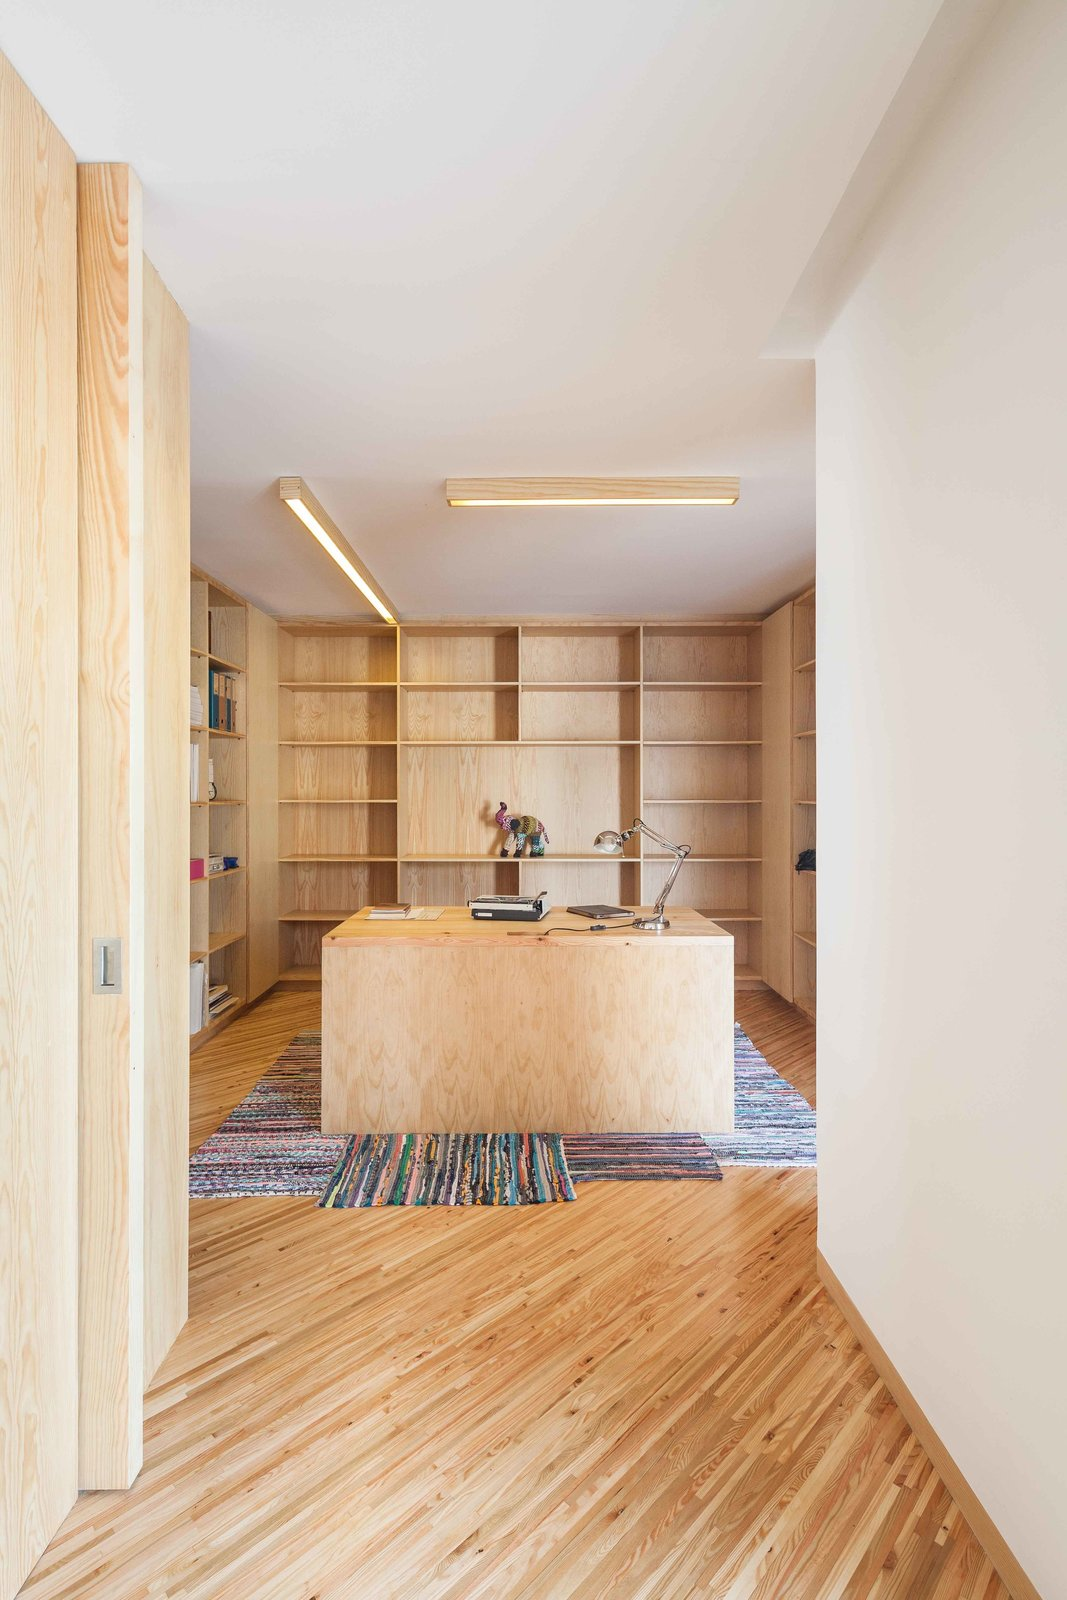 In the study, strip lighting illuminates a desk almost entirely surrounded by built-in bookshelves.  Stuff I like by Chloe Michaelidis from Lovely Beach House is All About Angles, Stucco, and Wood